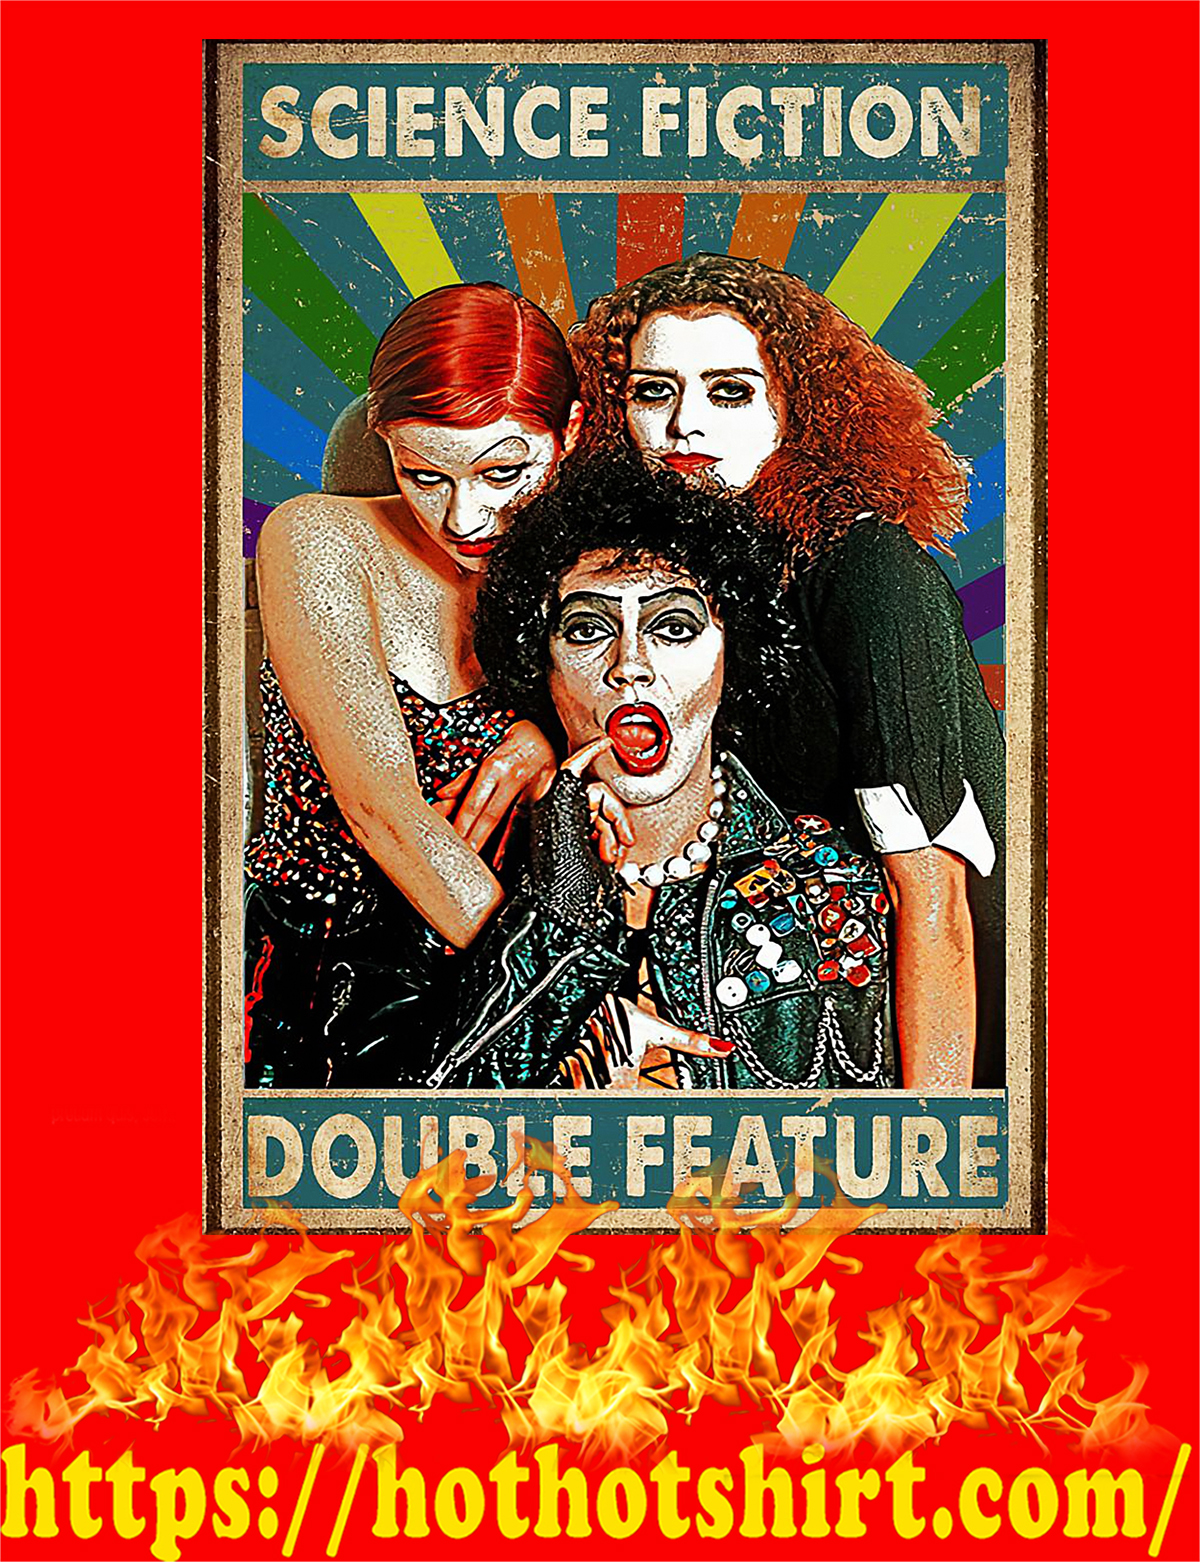 Rocky horror science fiction double feature poster - A3